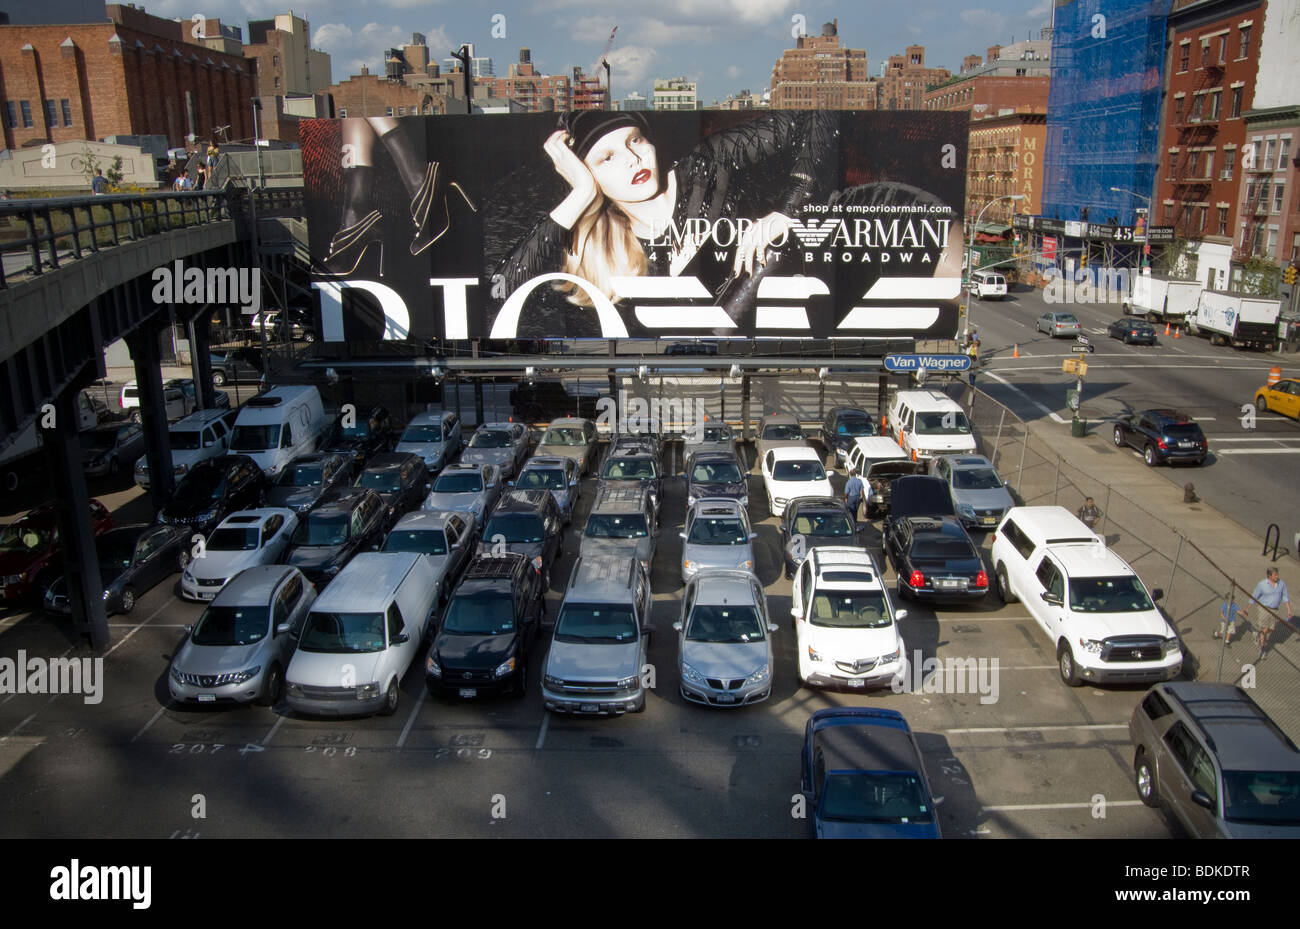 A billboard for Emporio Armani is seen from the new High Line Park in the New York neighborhood of Chelsea - Stock Image